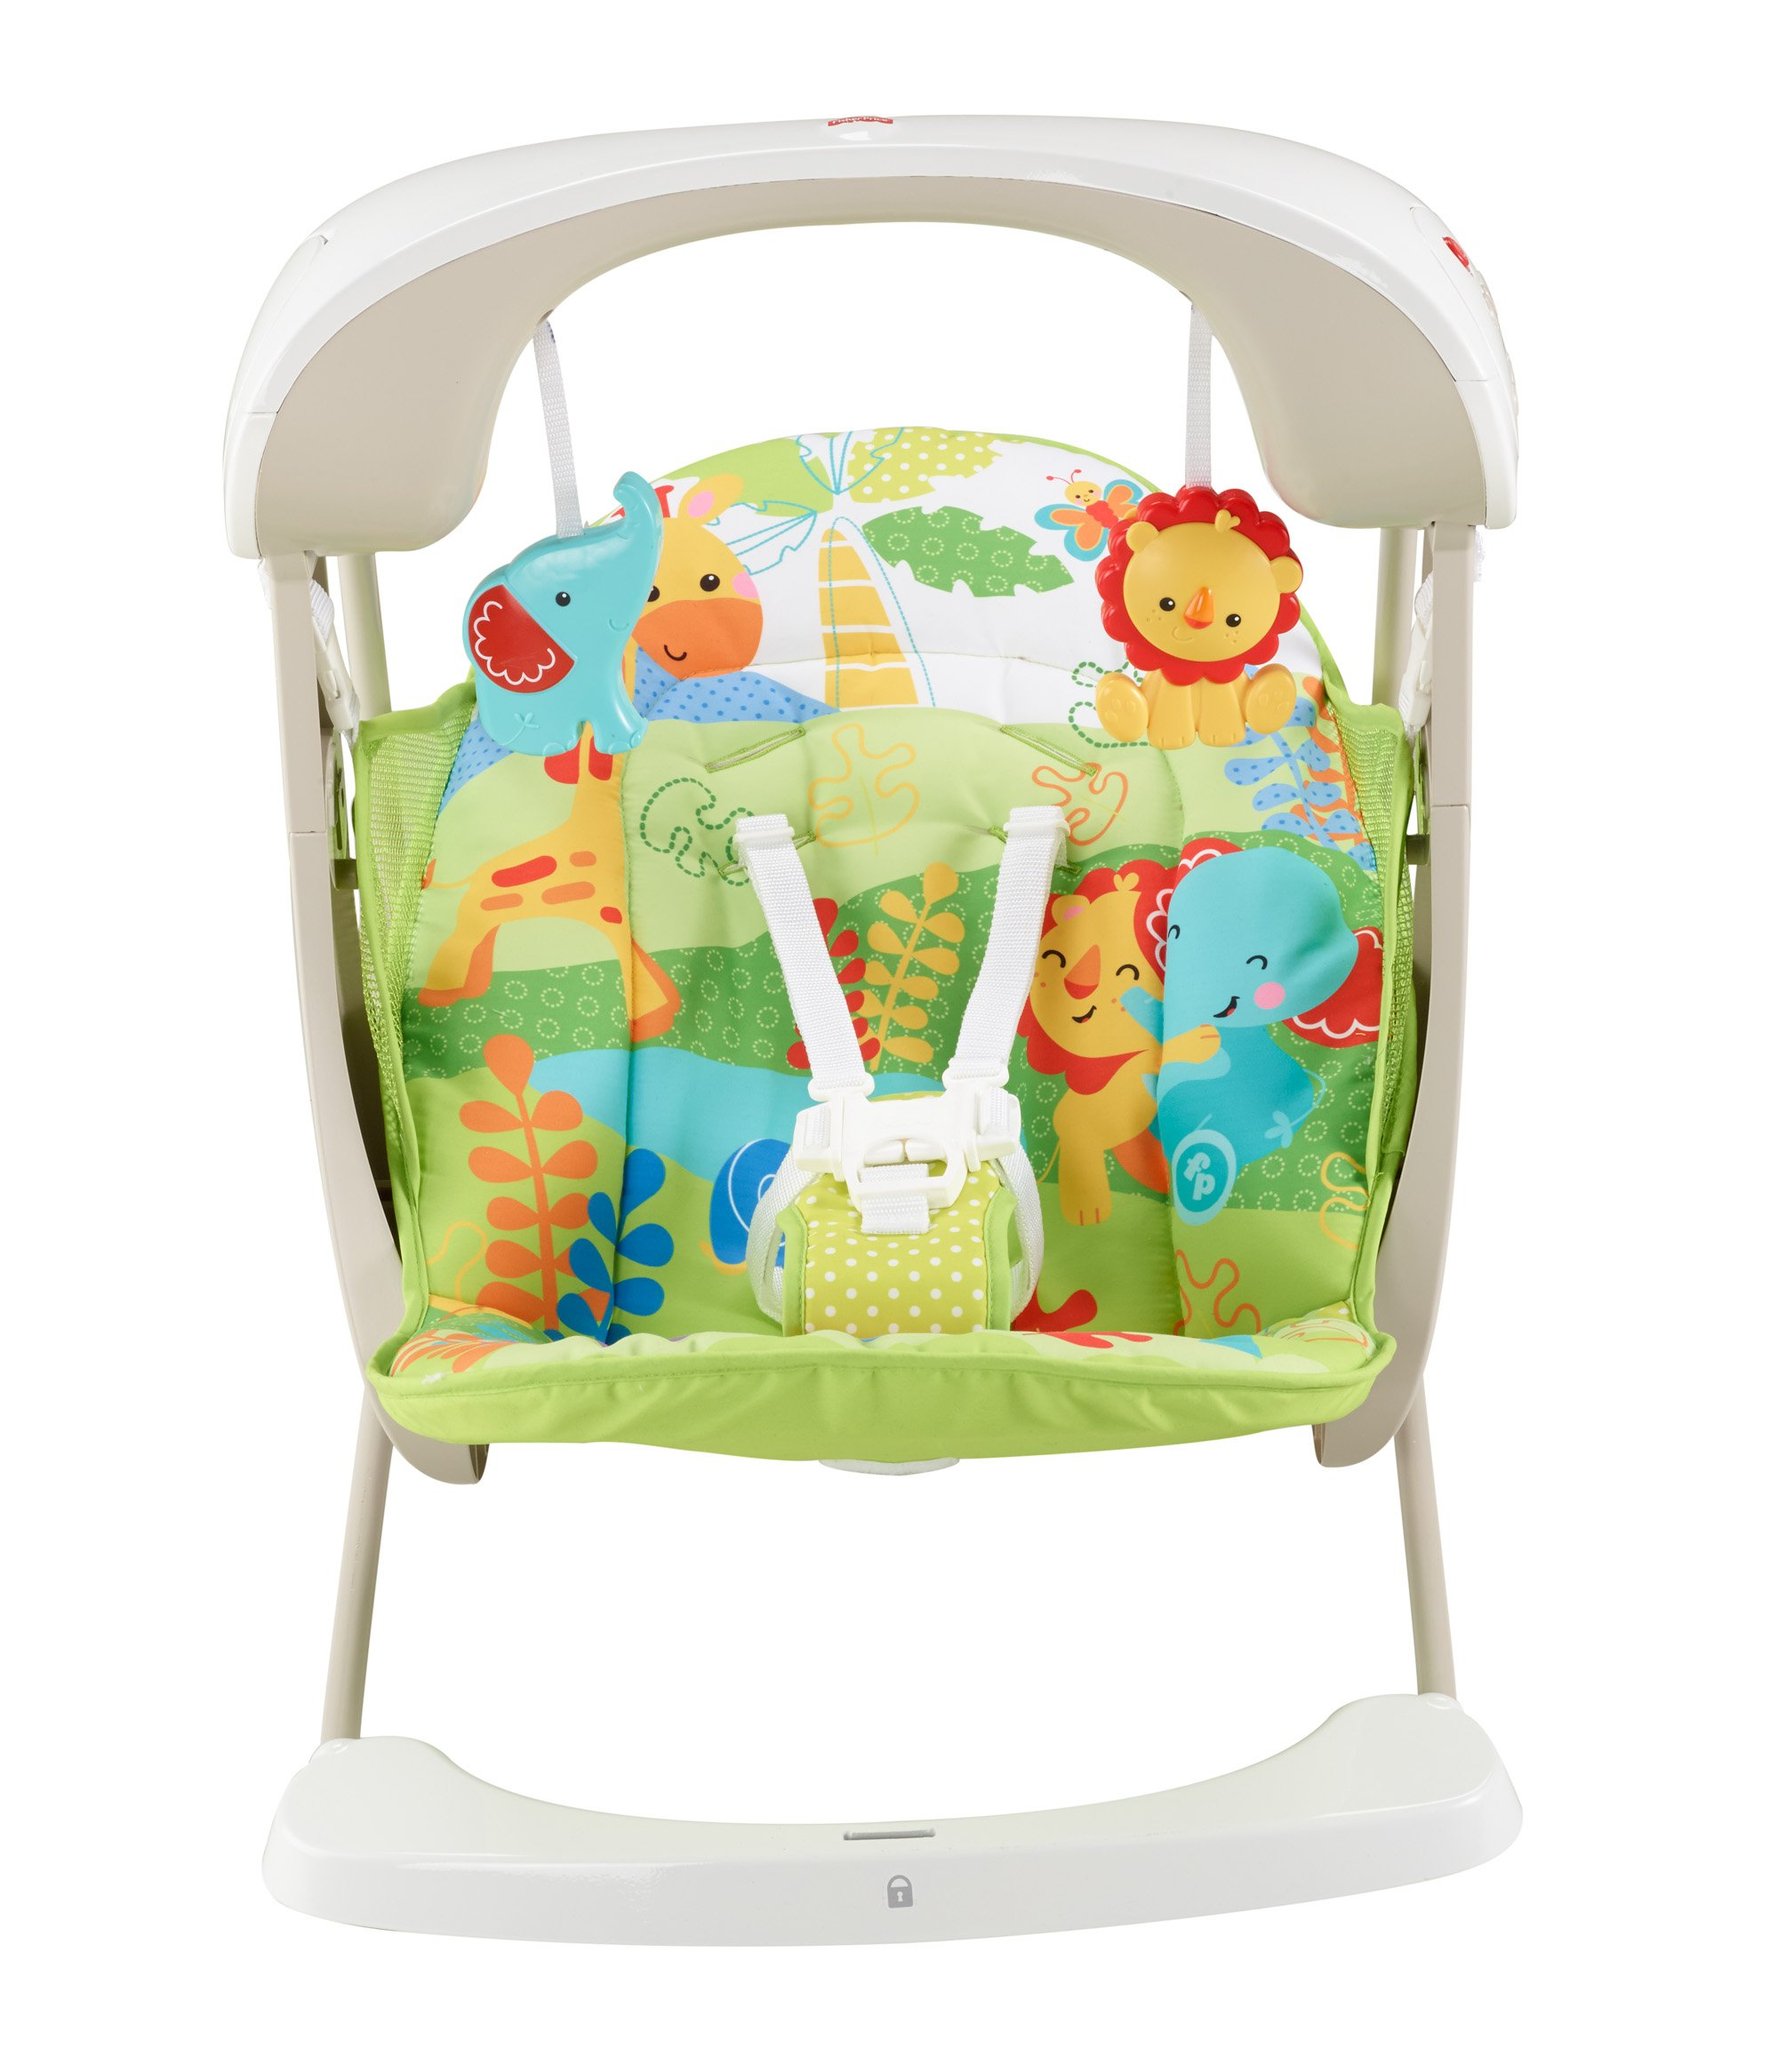 Fisher Price Take Along Swing And Seat Rainforest Friends